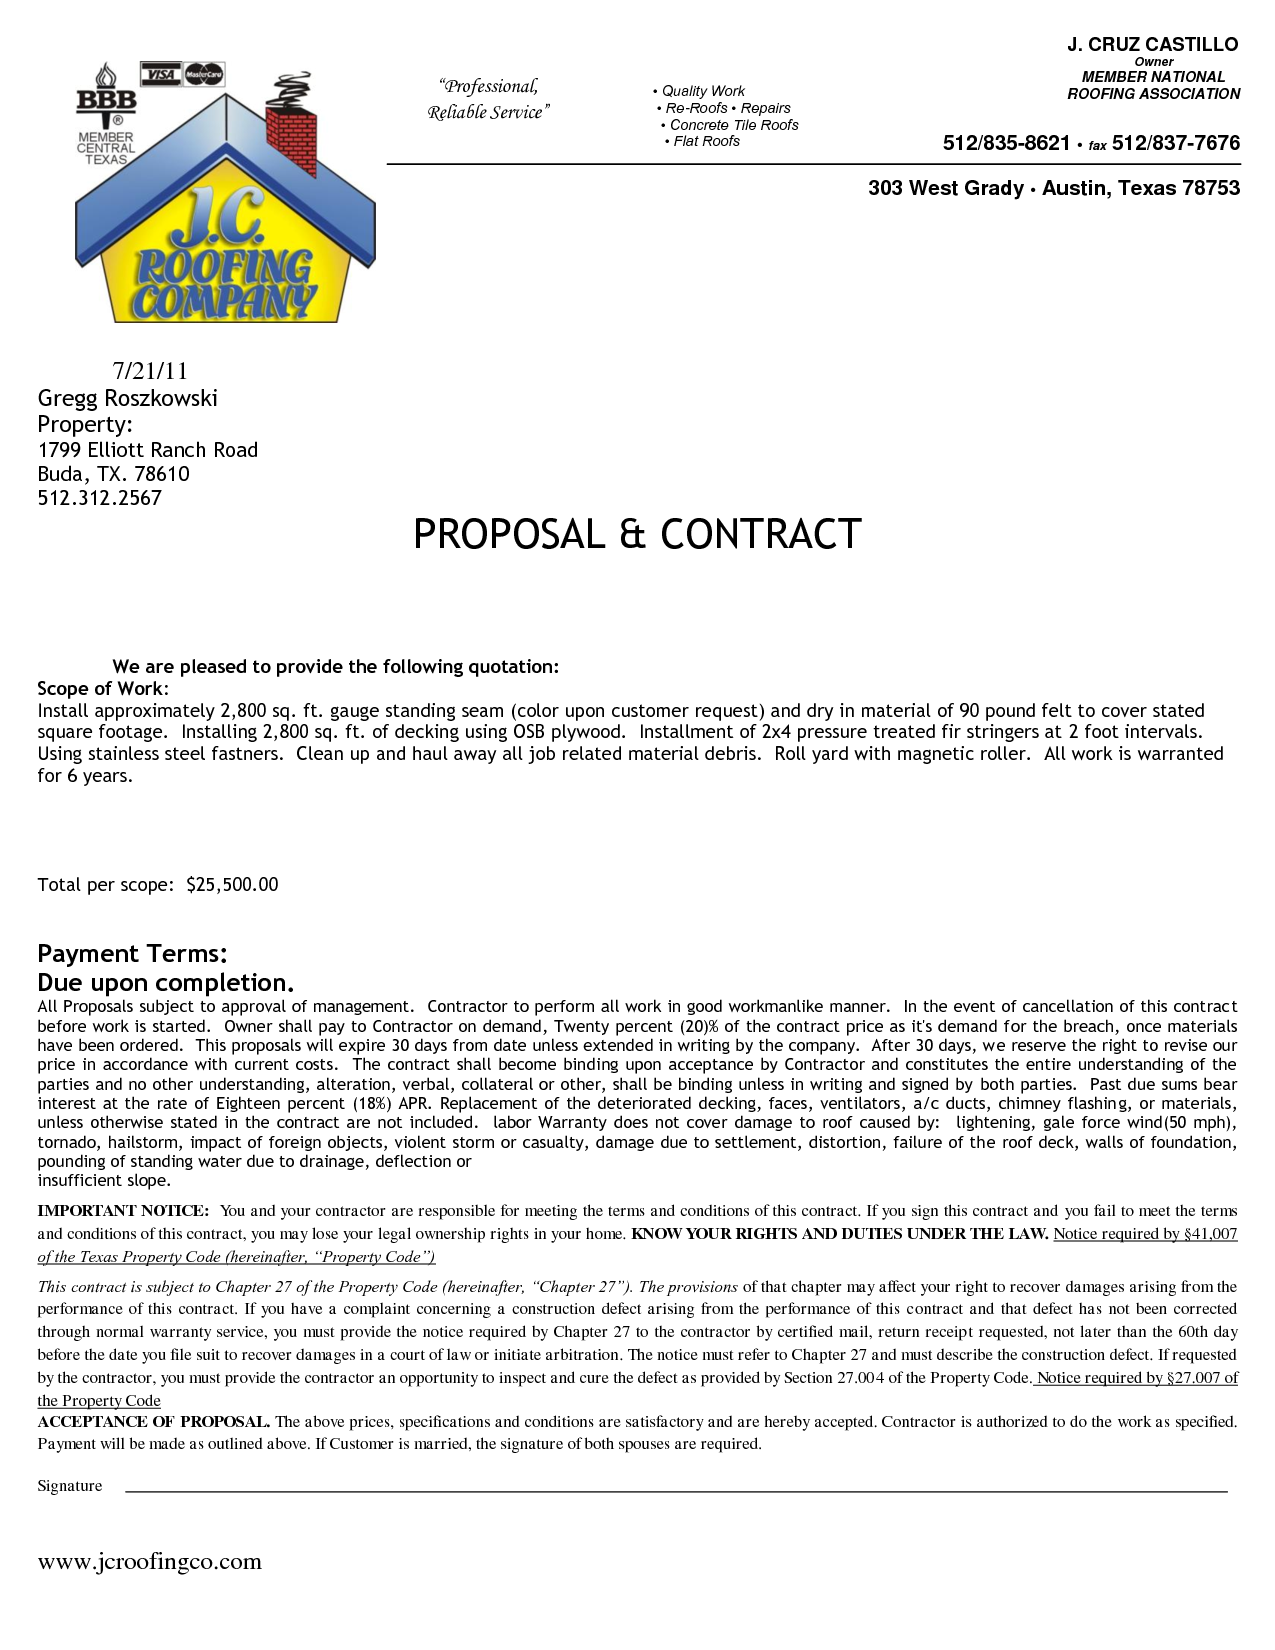 Roof Consultant Cover Letter Roofing Contract Texas By Aaa46674 Sample Roofing Contract